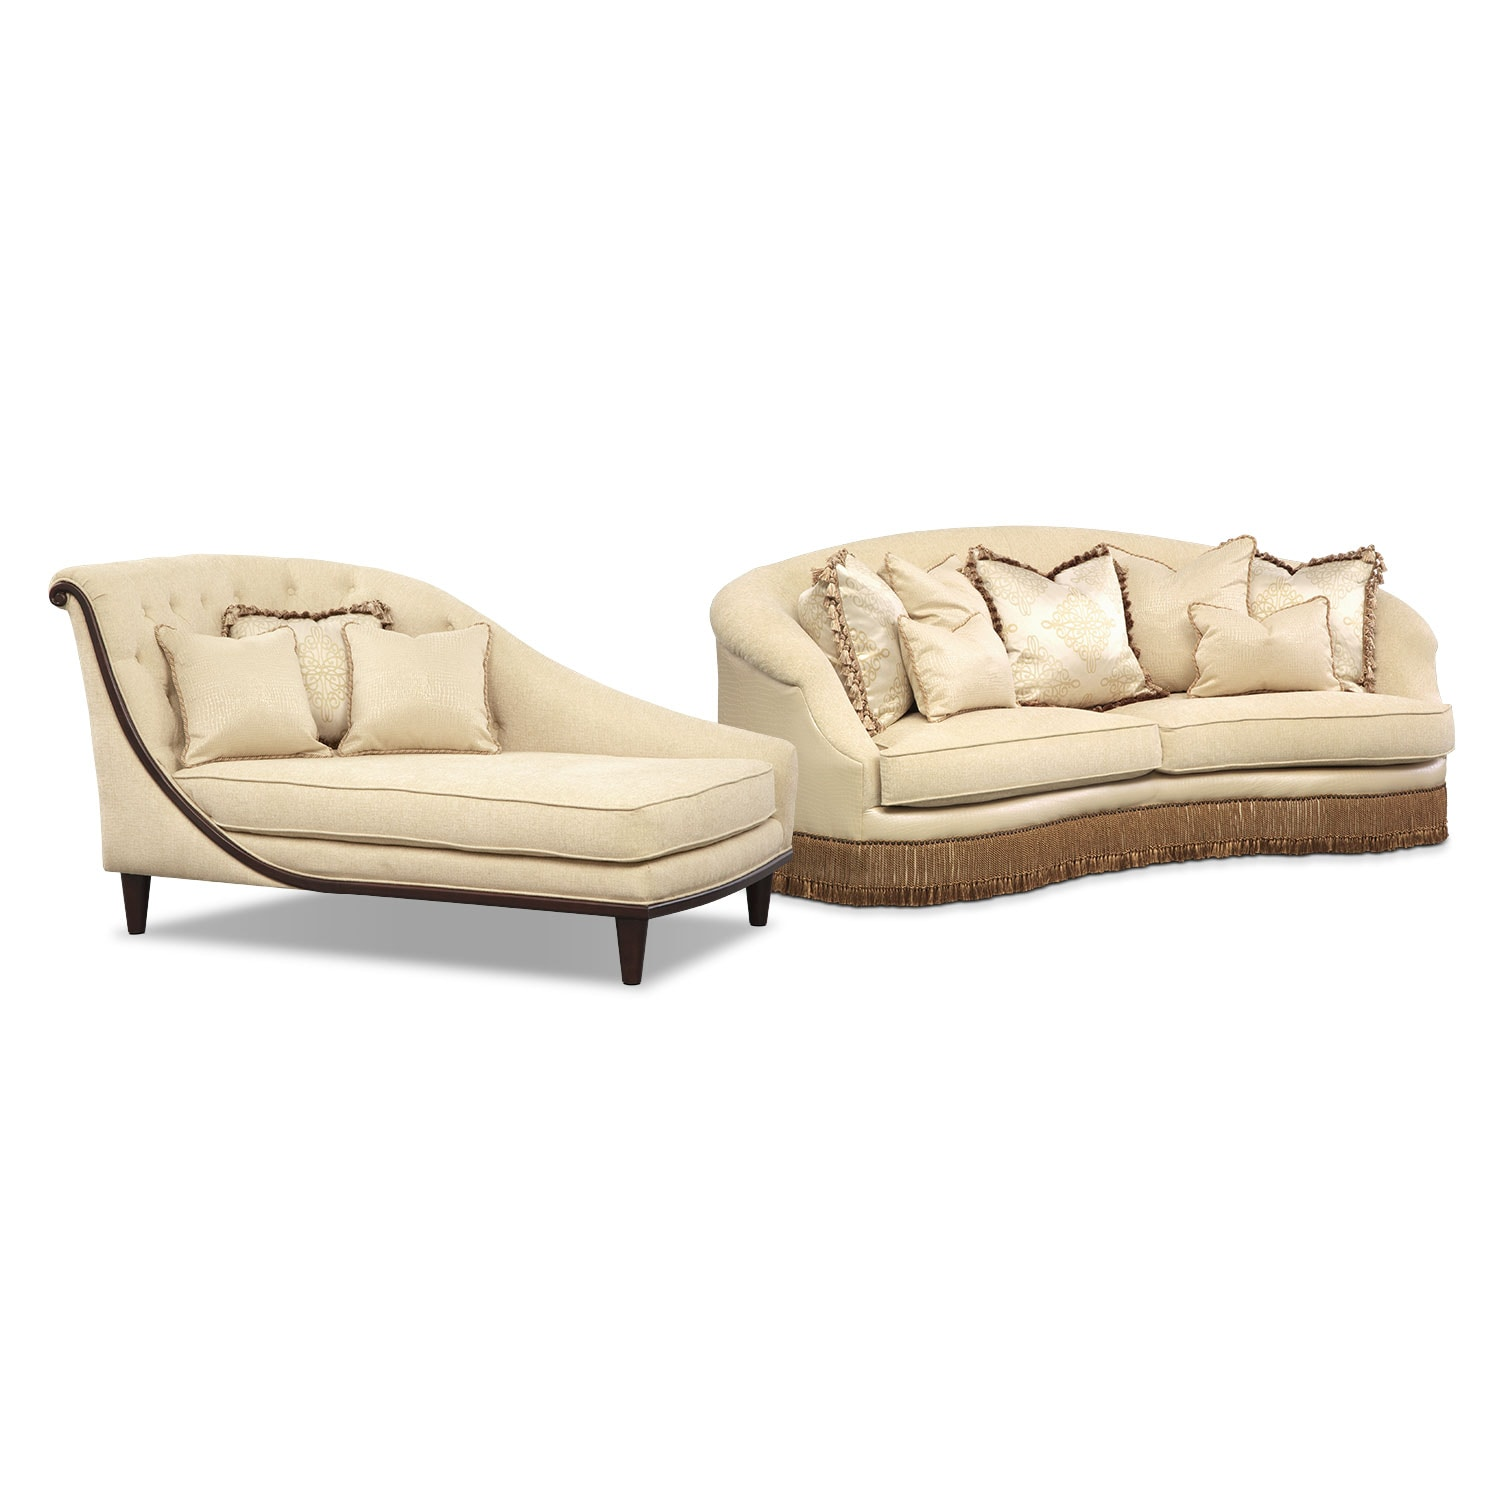 Living Room Furniture - Vivienne 2 Pc. Living Room w/Chaise